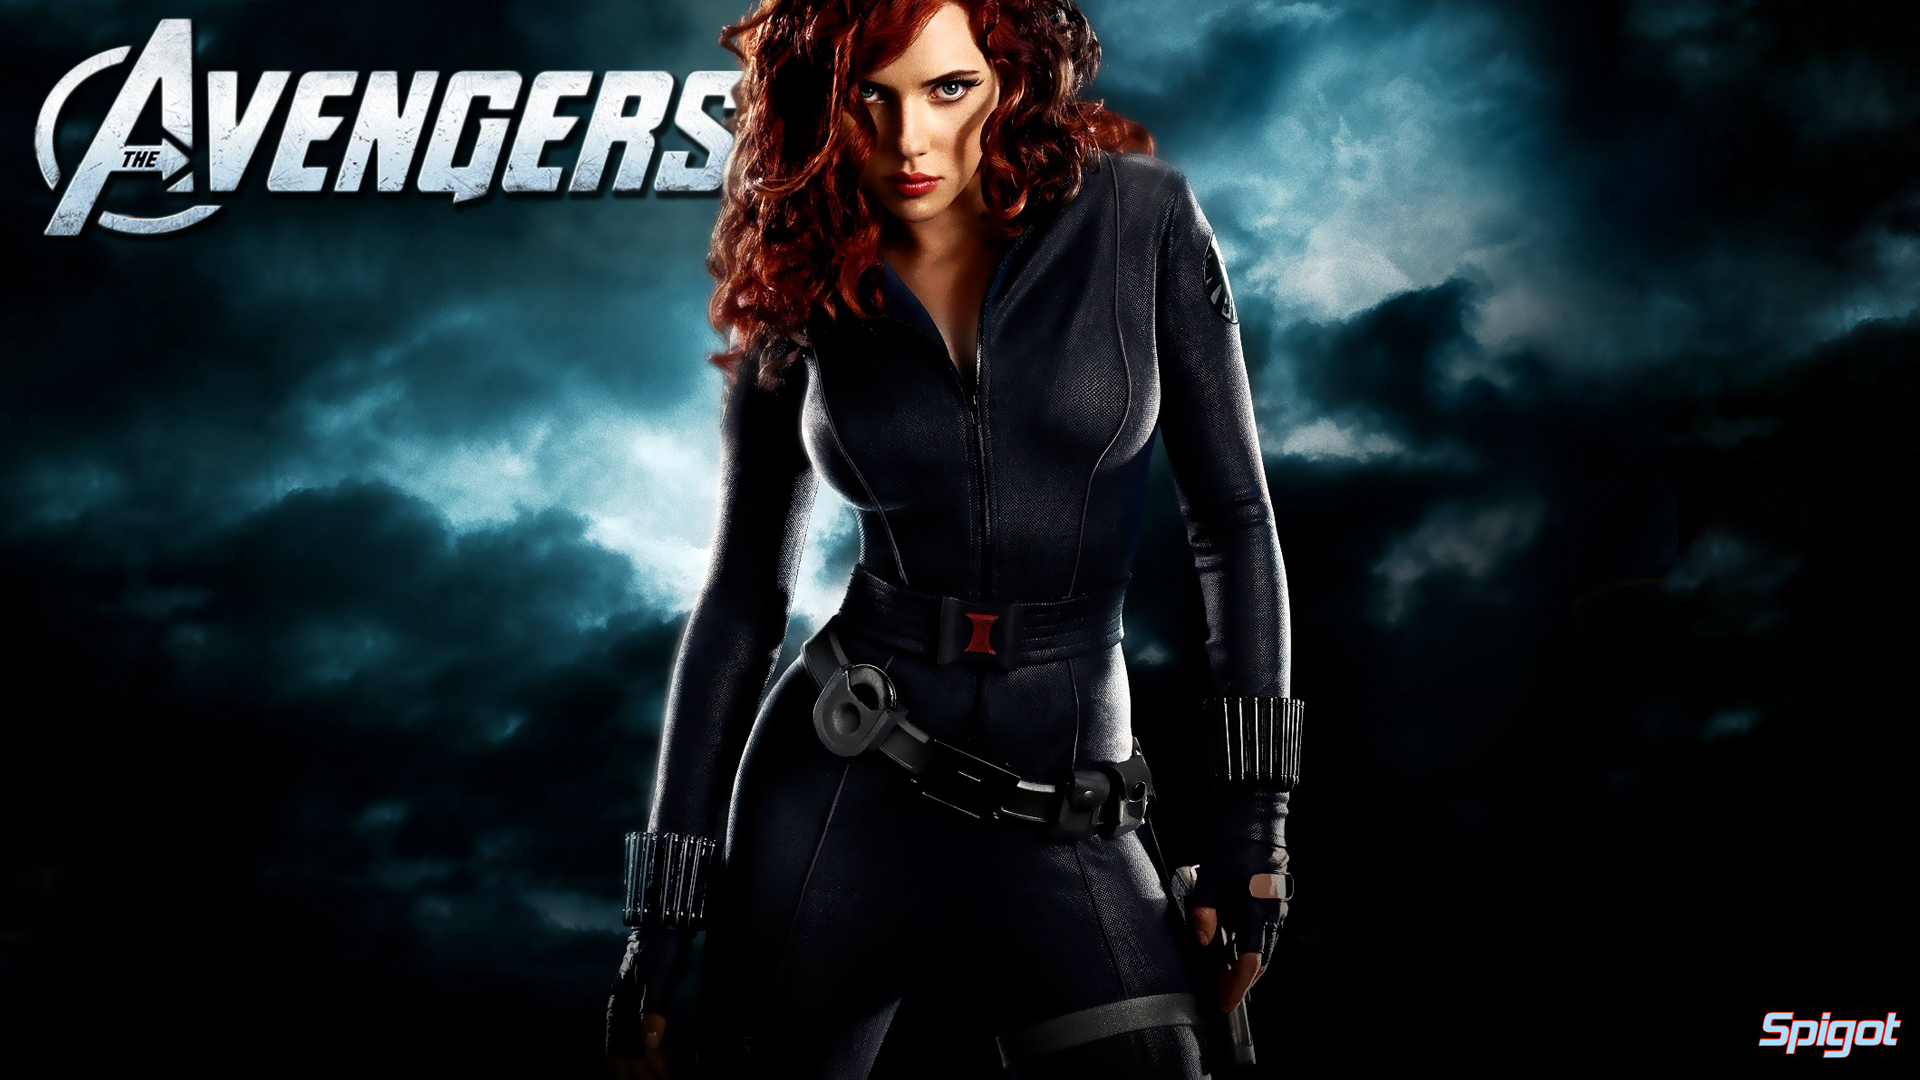 Another Avengers Wallpaper This Time Its The Freelance Agent Of SHIELD Black Widow Played By Scarlett Johansson